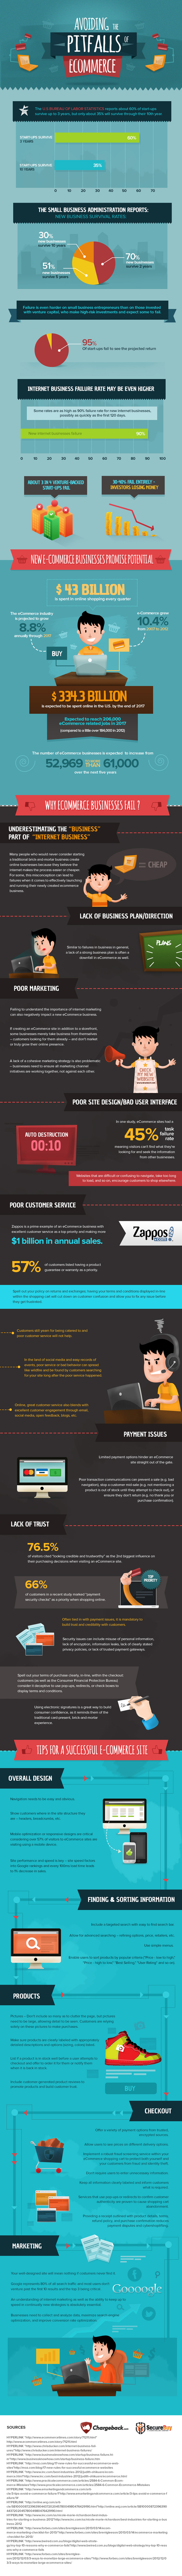 stop mistakes ecommerce infographic